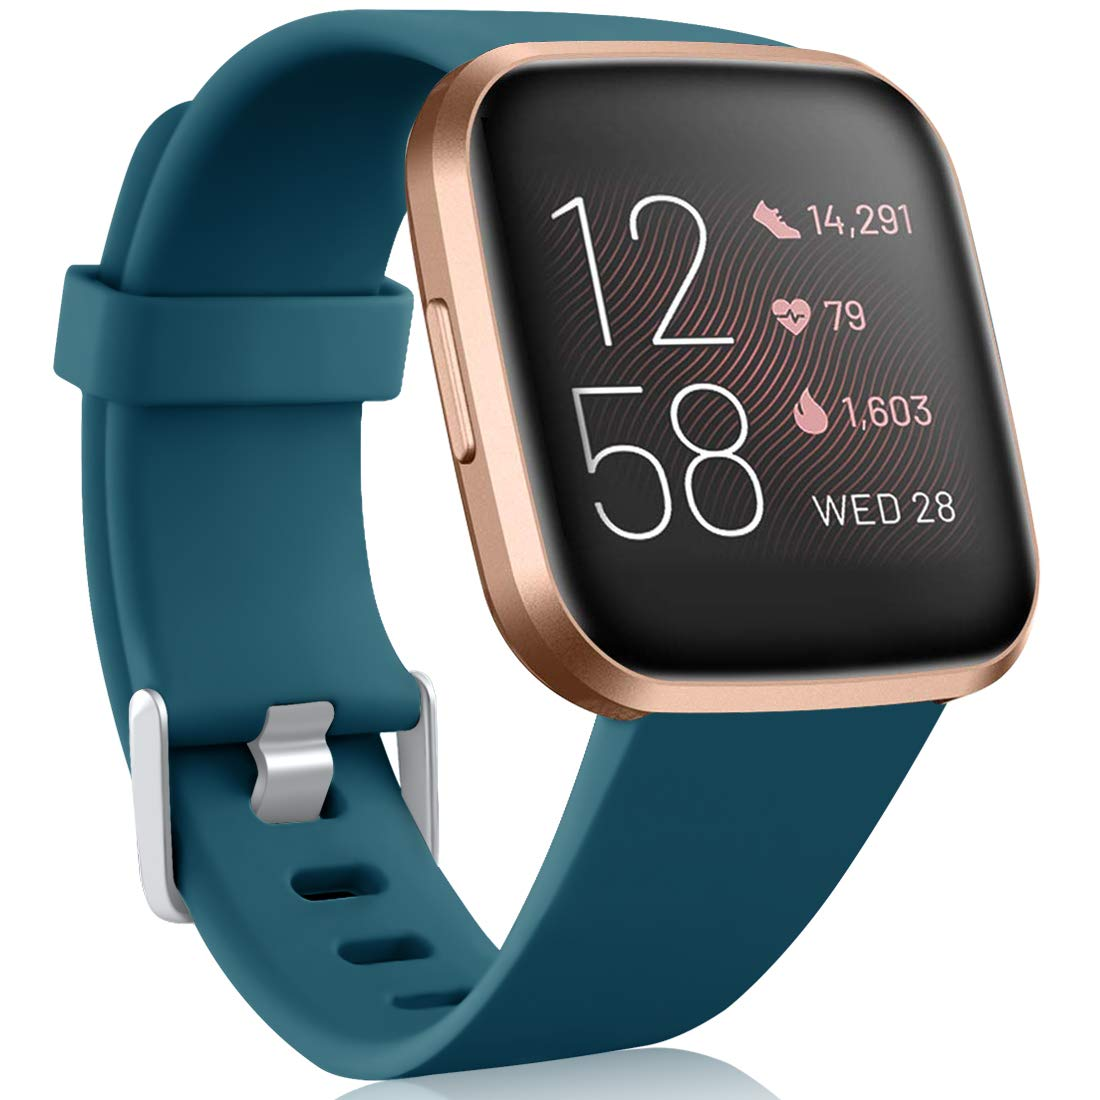 Maledan Compatible with Fitbit Versa 2/Versa/Versa SE/Versa Lite Bands for Women Men, Waterproof Soft Silicone Band Classic Sport Strap Replacement for Fitbit Versa Watch, Large, Slate Blue